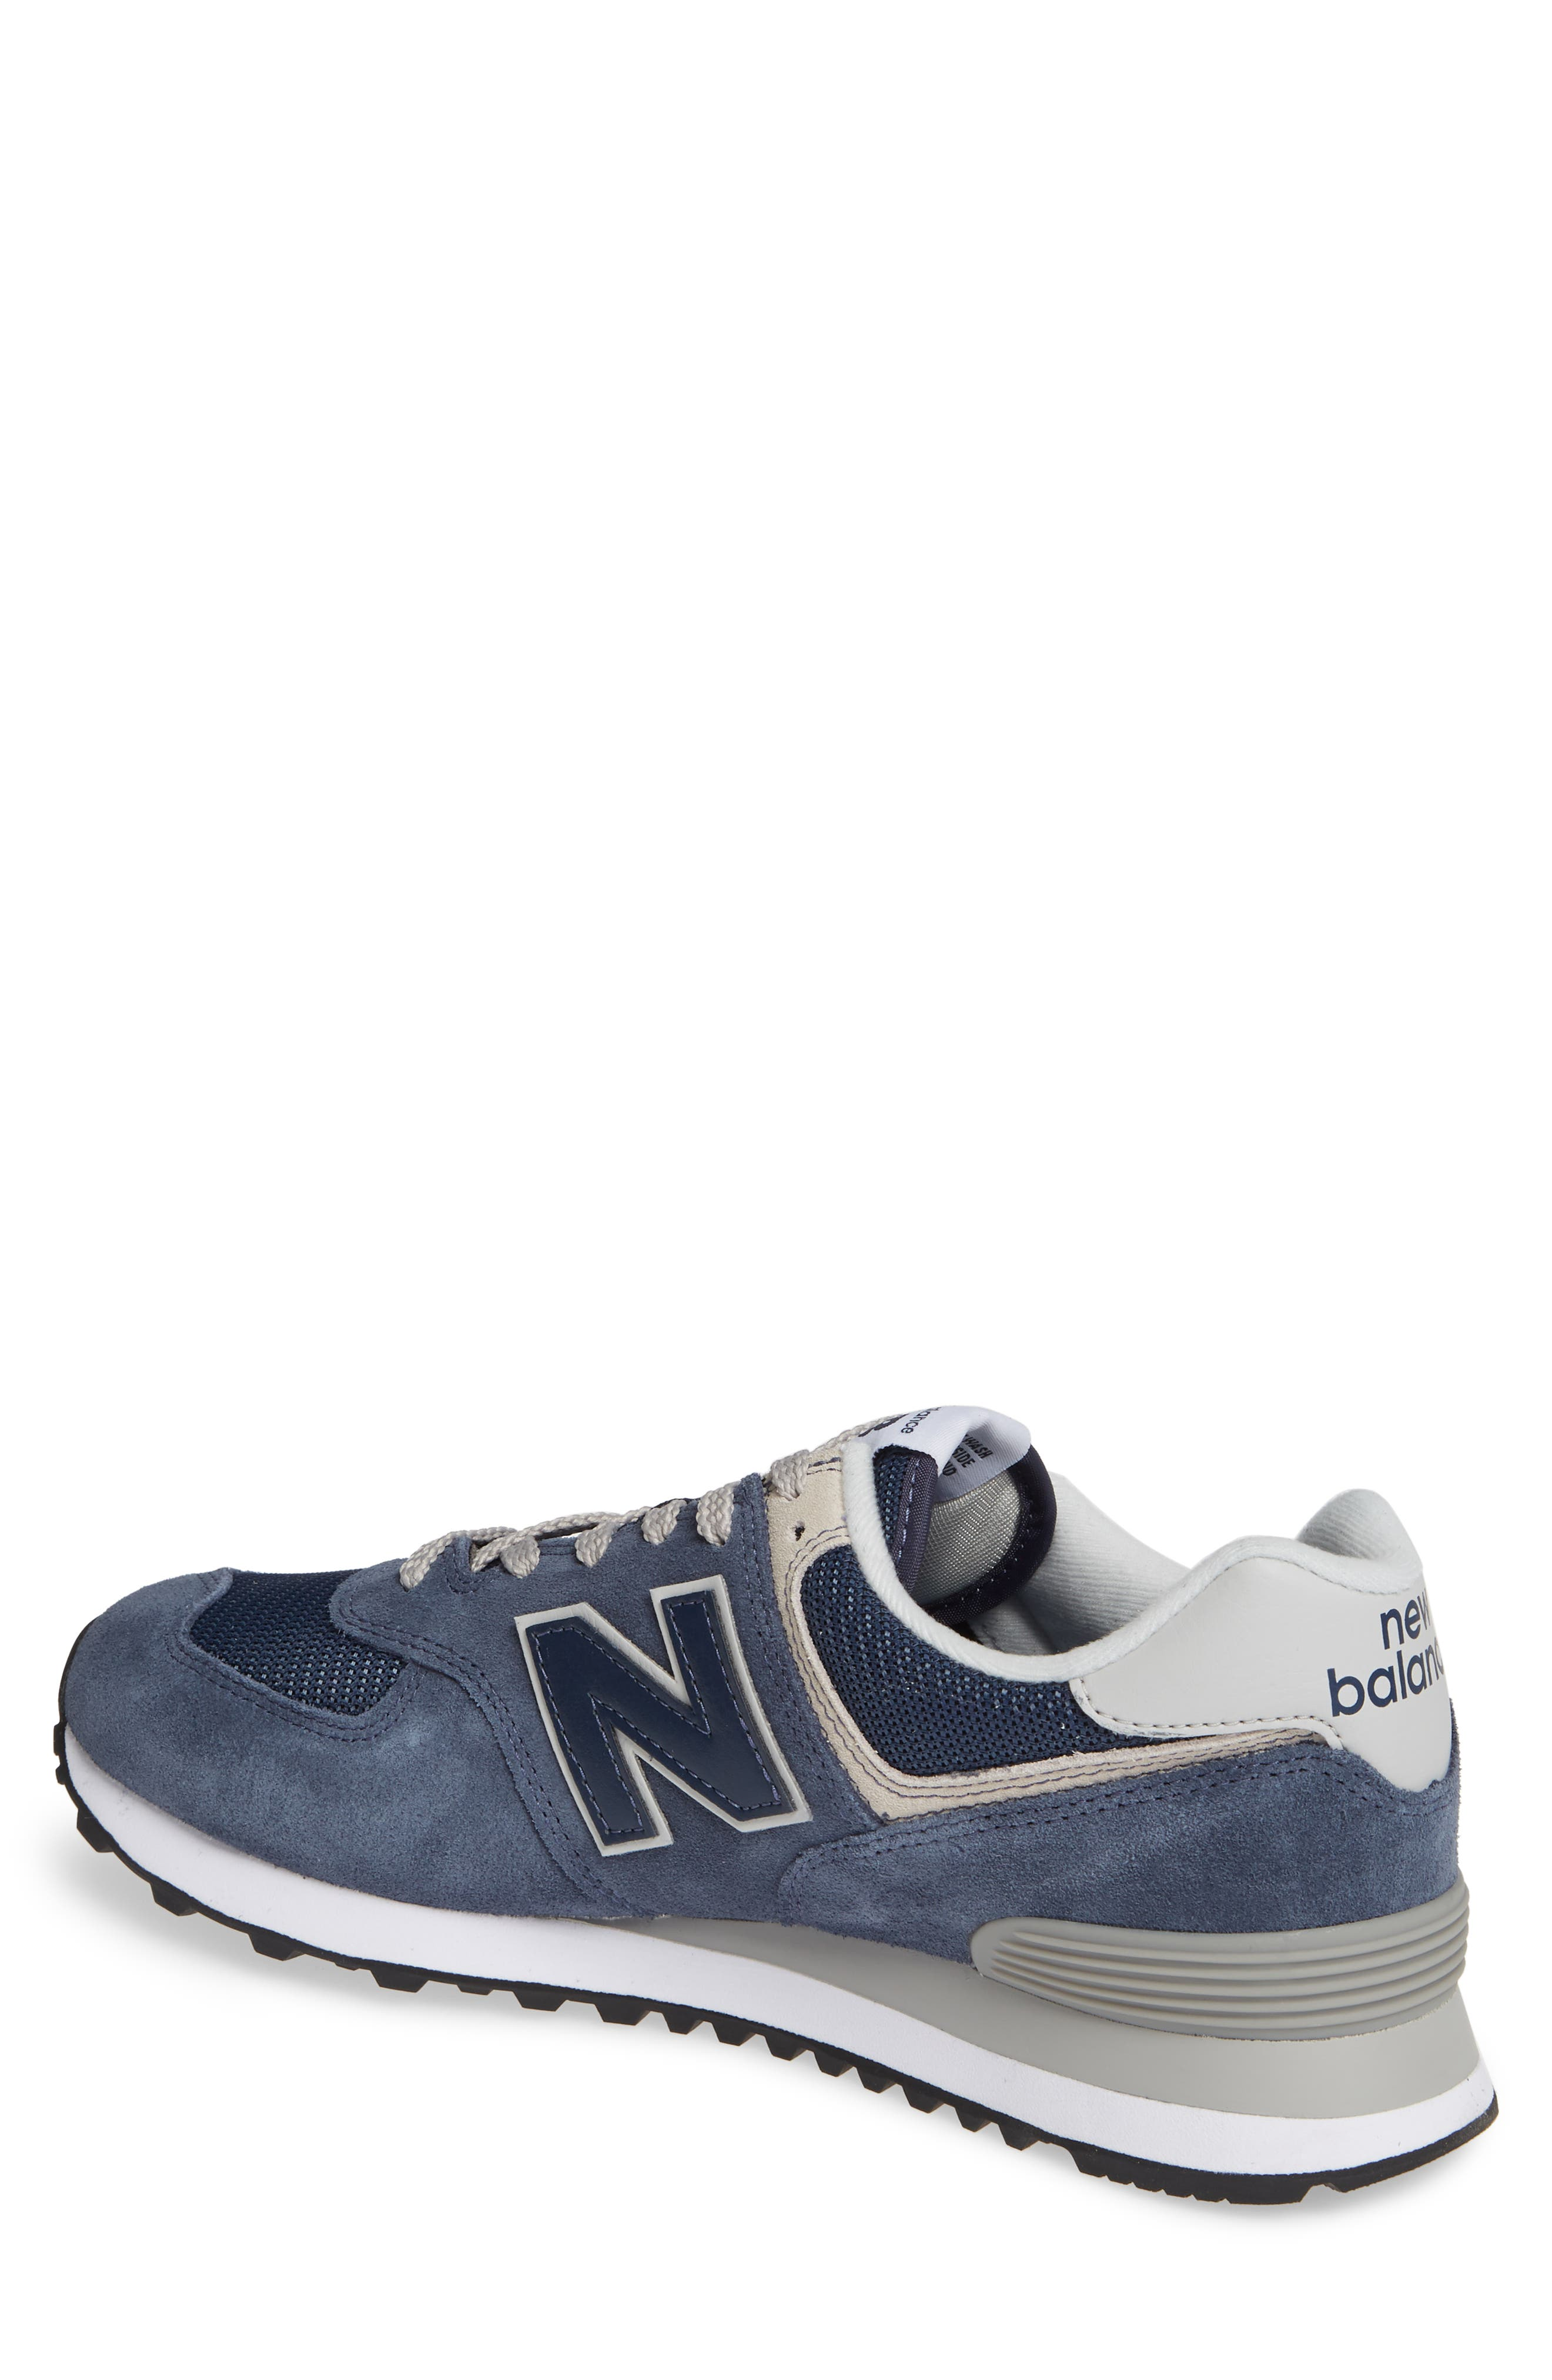 NEW BALANCE, 574 Classic Sneaker, Alternate thumbnail 2, color, BLACK IRIS